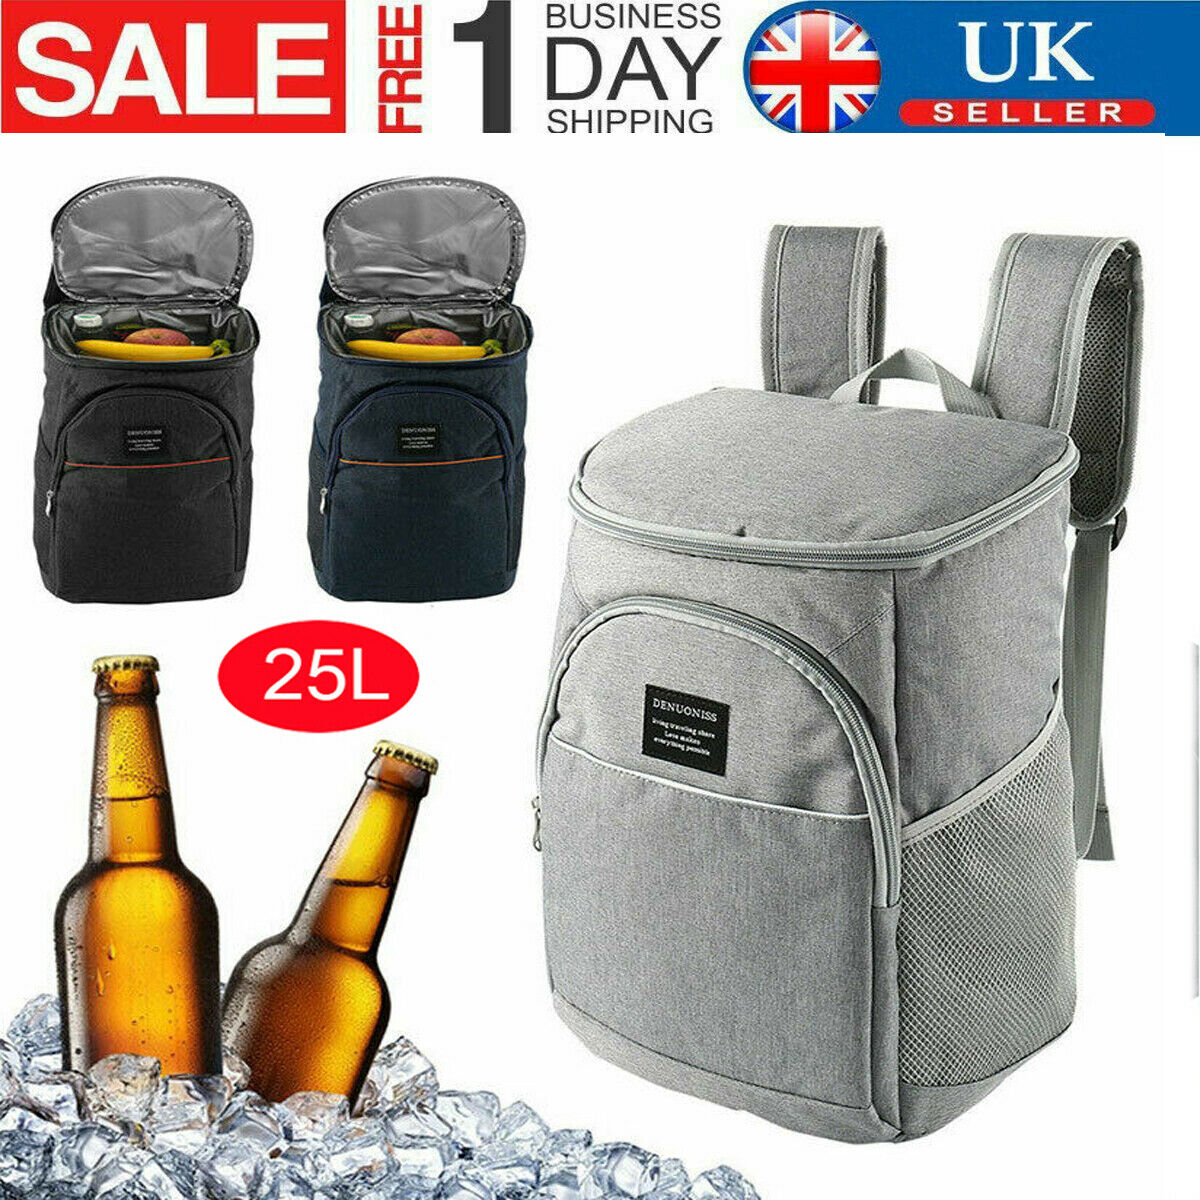 Beach Large Insulated Cool Bag for Picnic Leoh 25L Cooler Backpack /& Camping